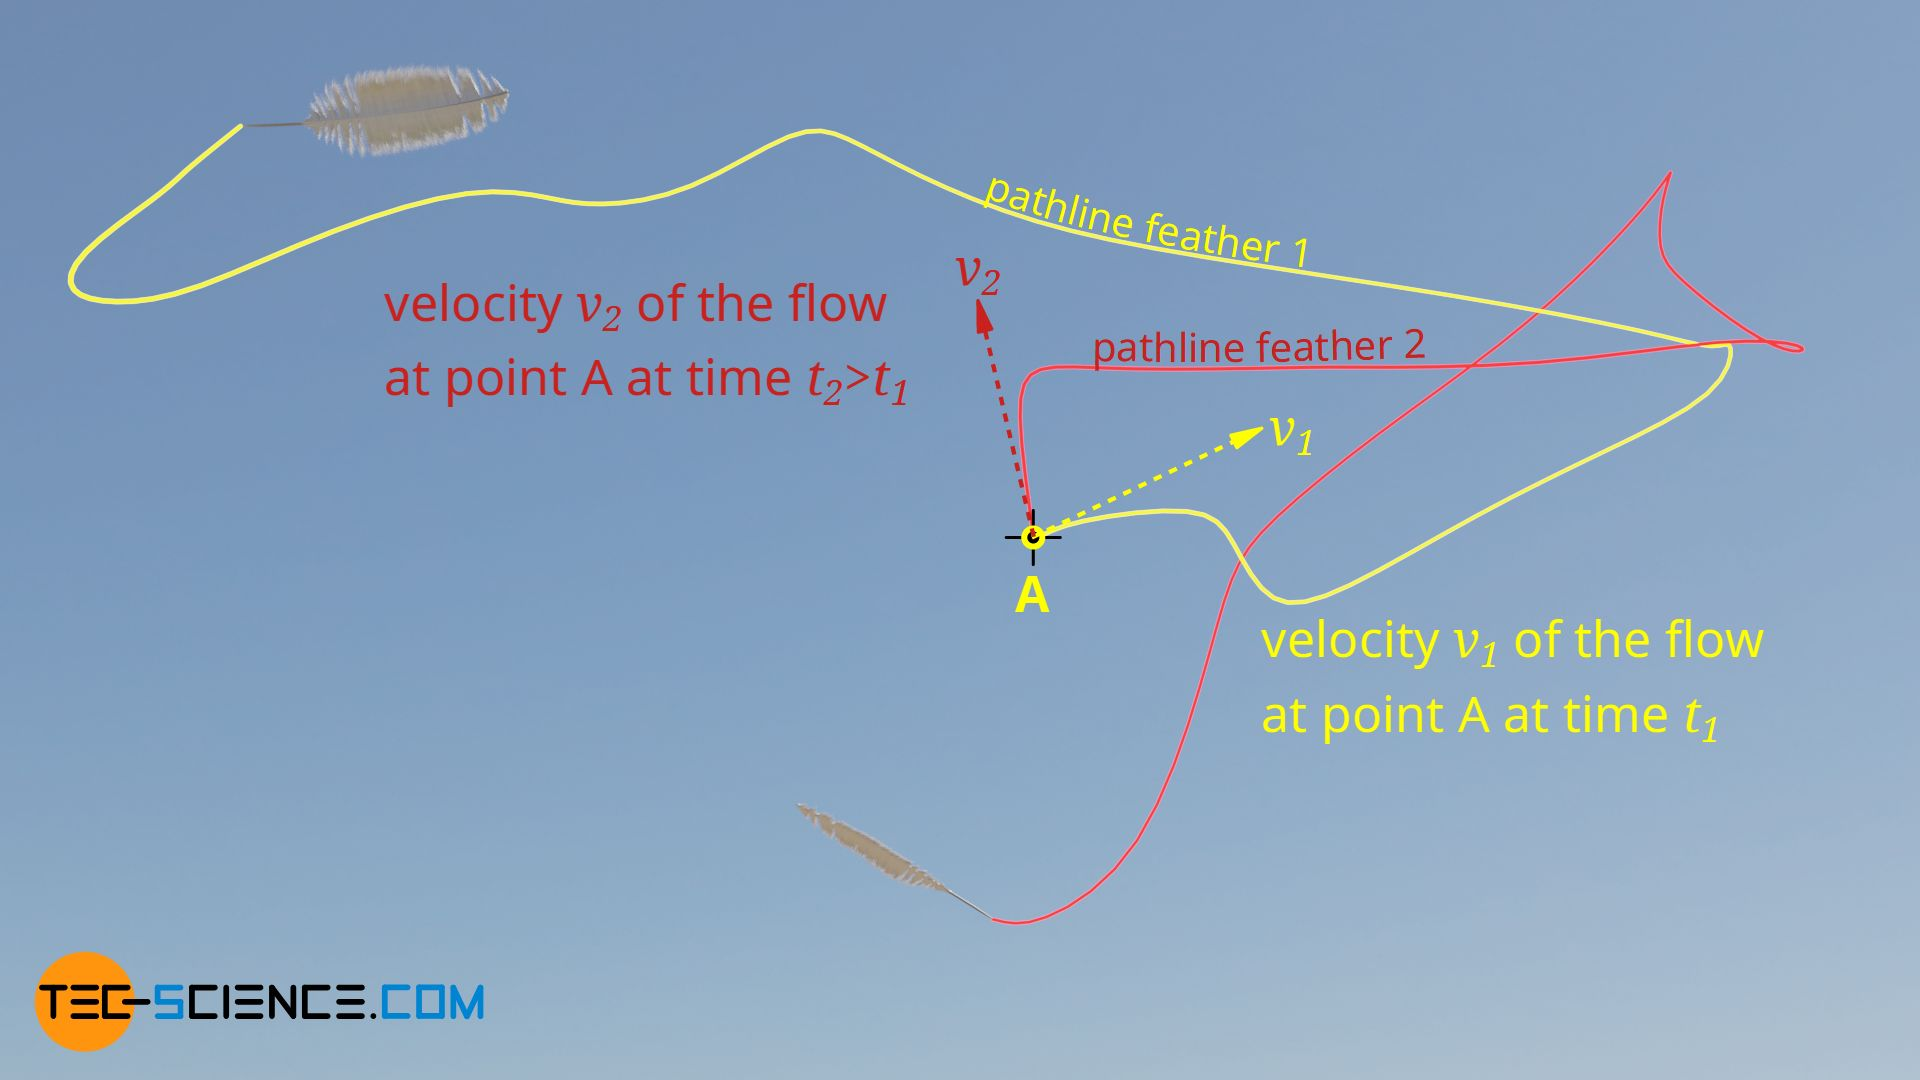 Velocity of an unsteady flow in one point in space, but at different times